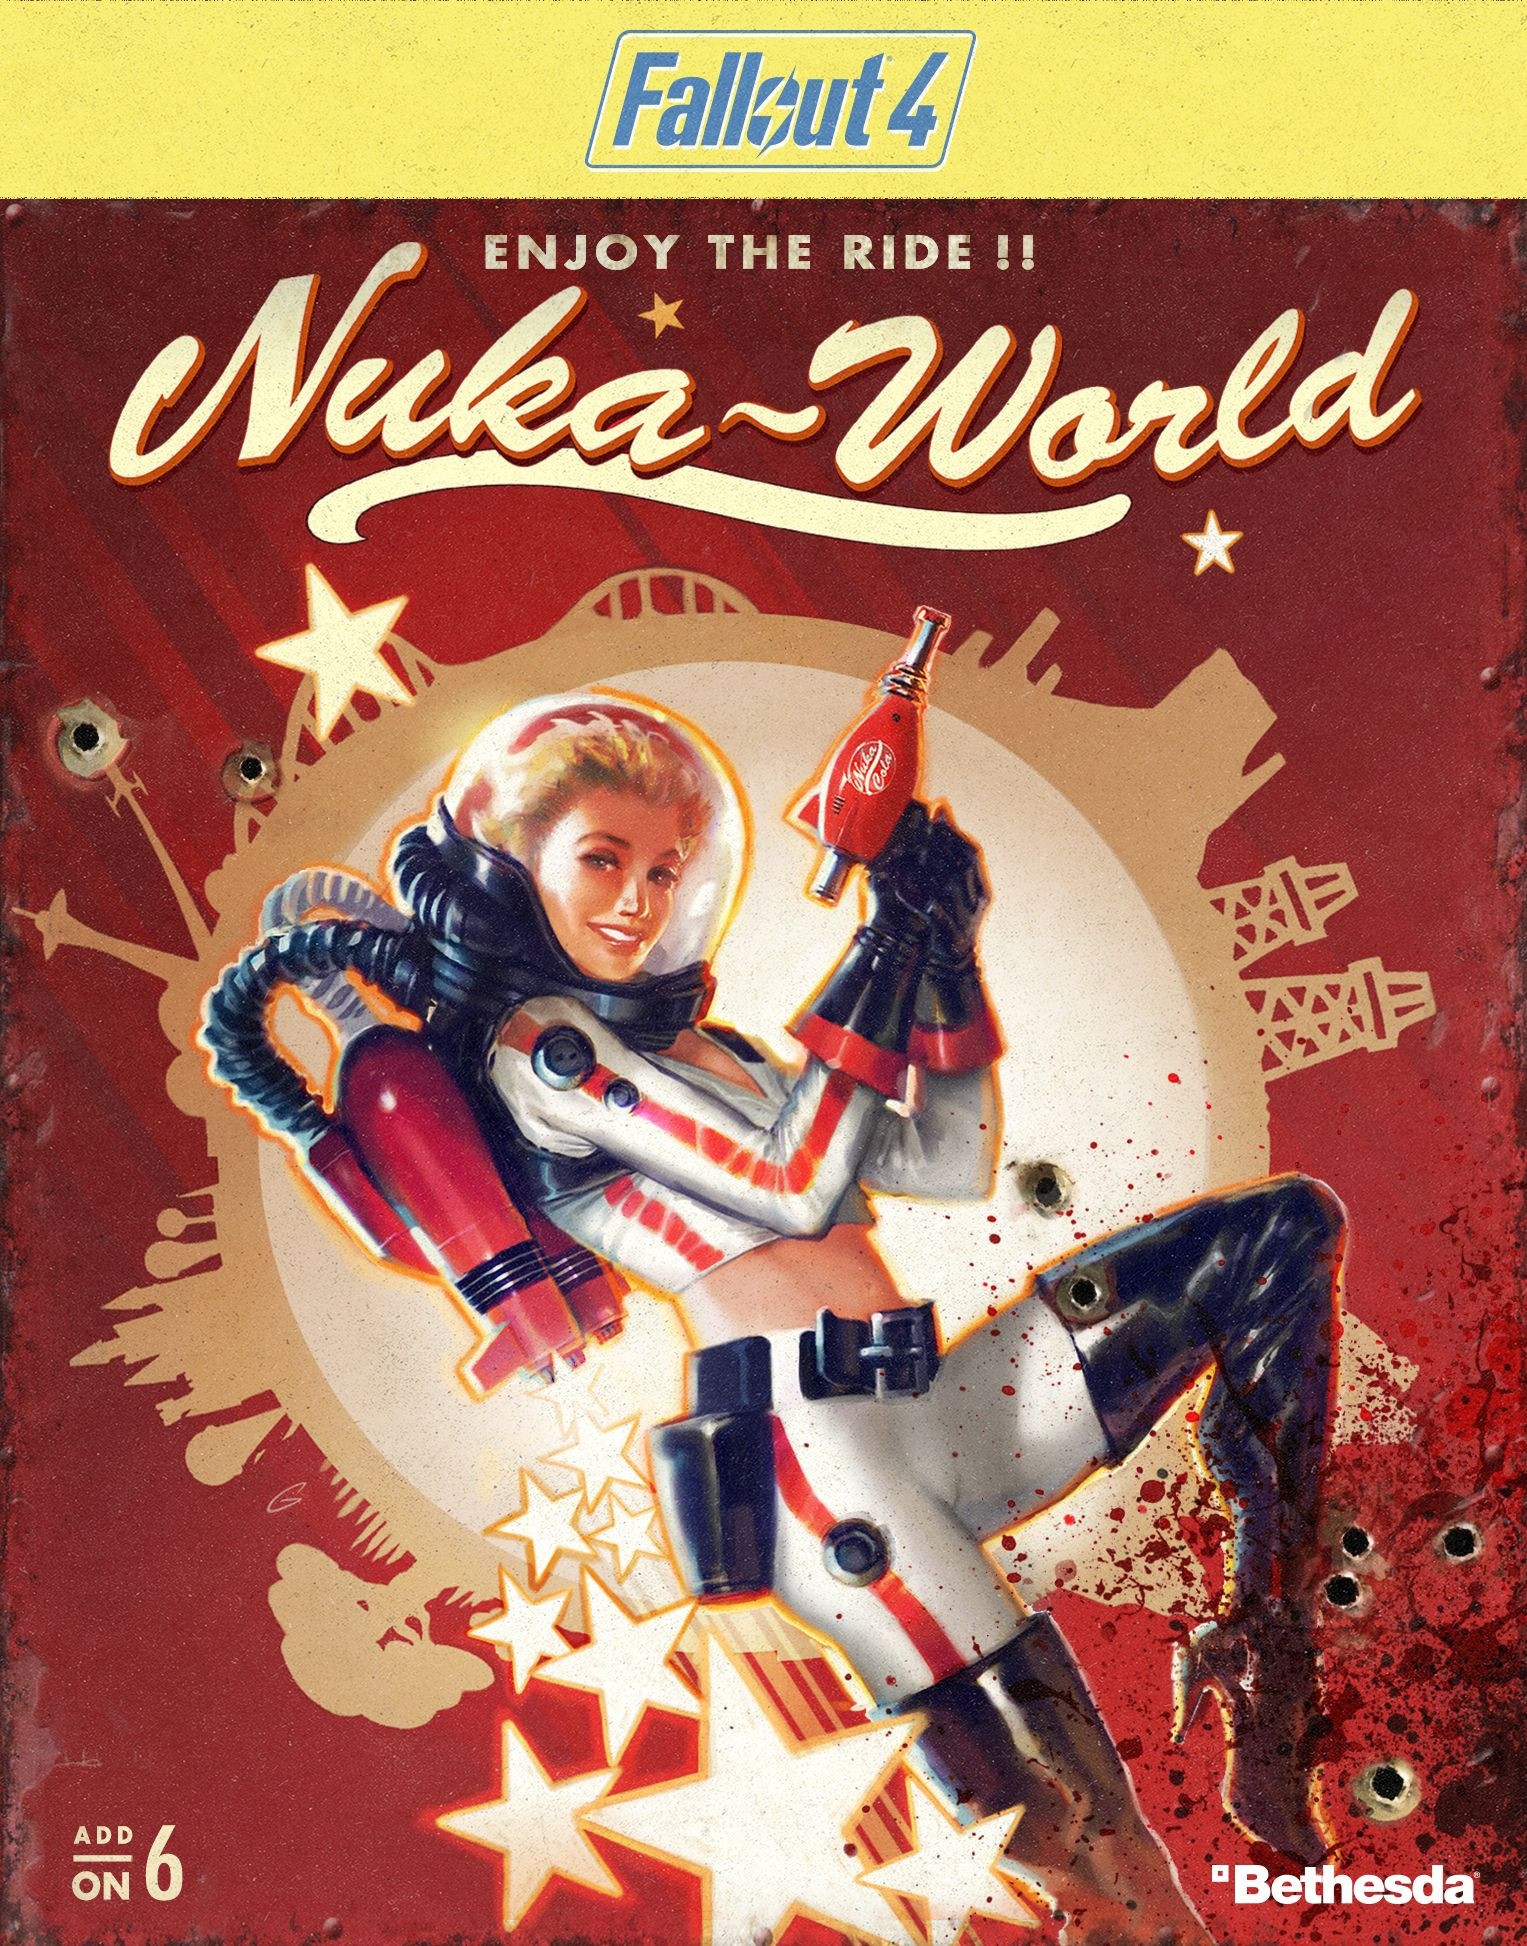 fallout-4-nuka-world-artwork-001